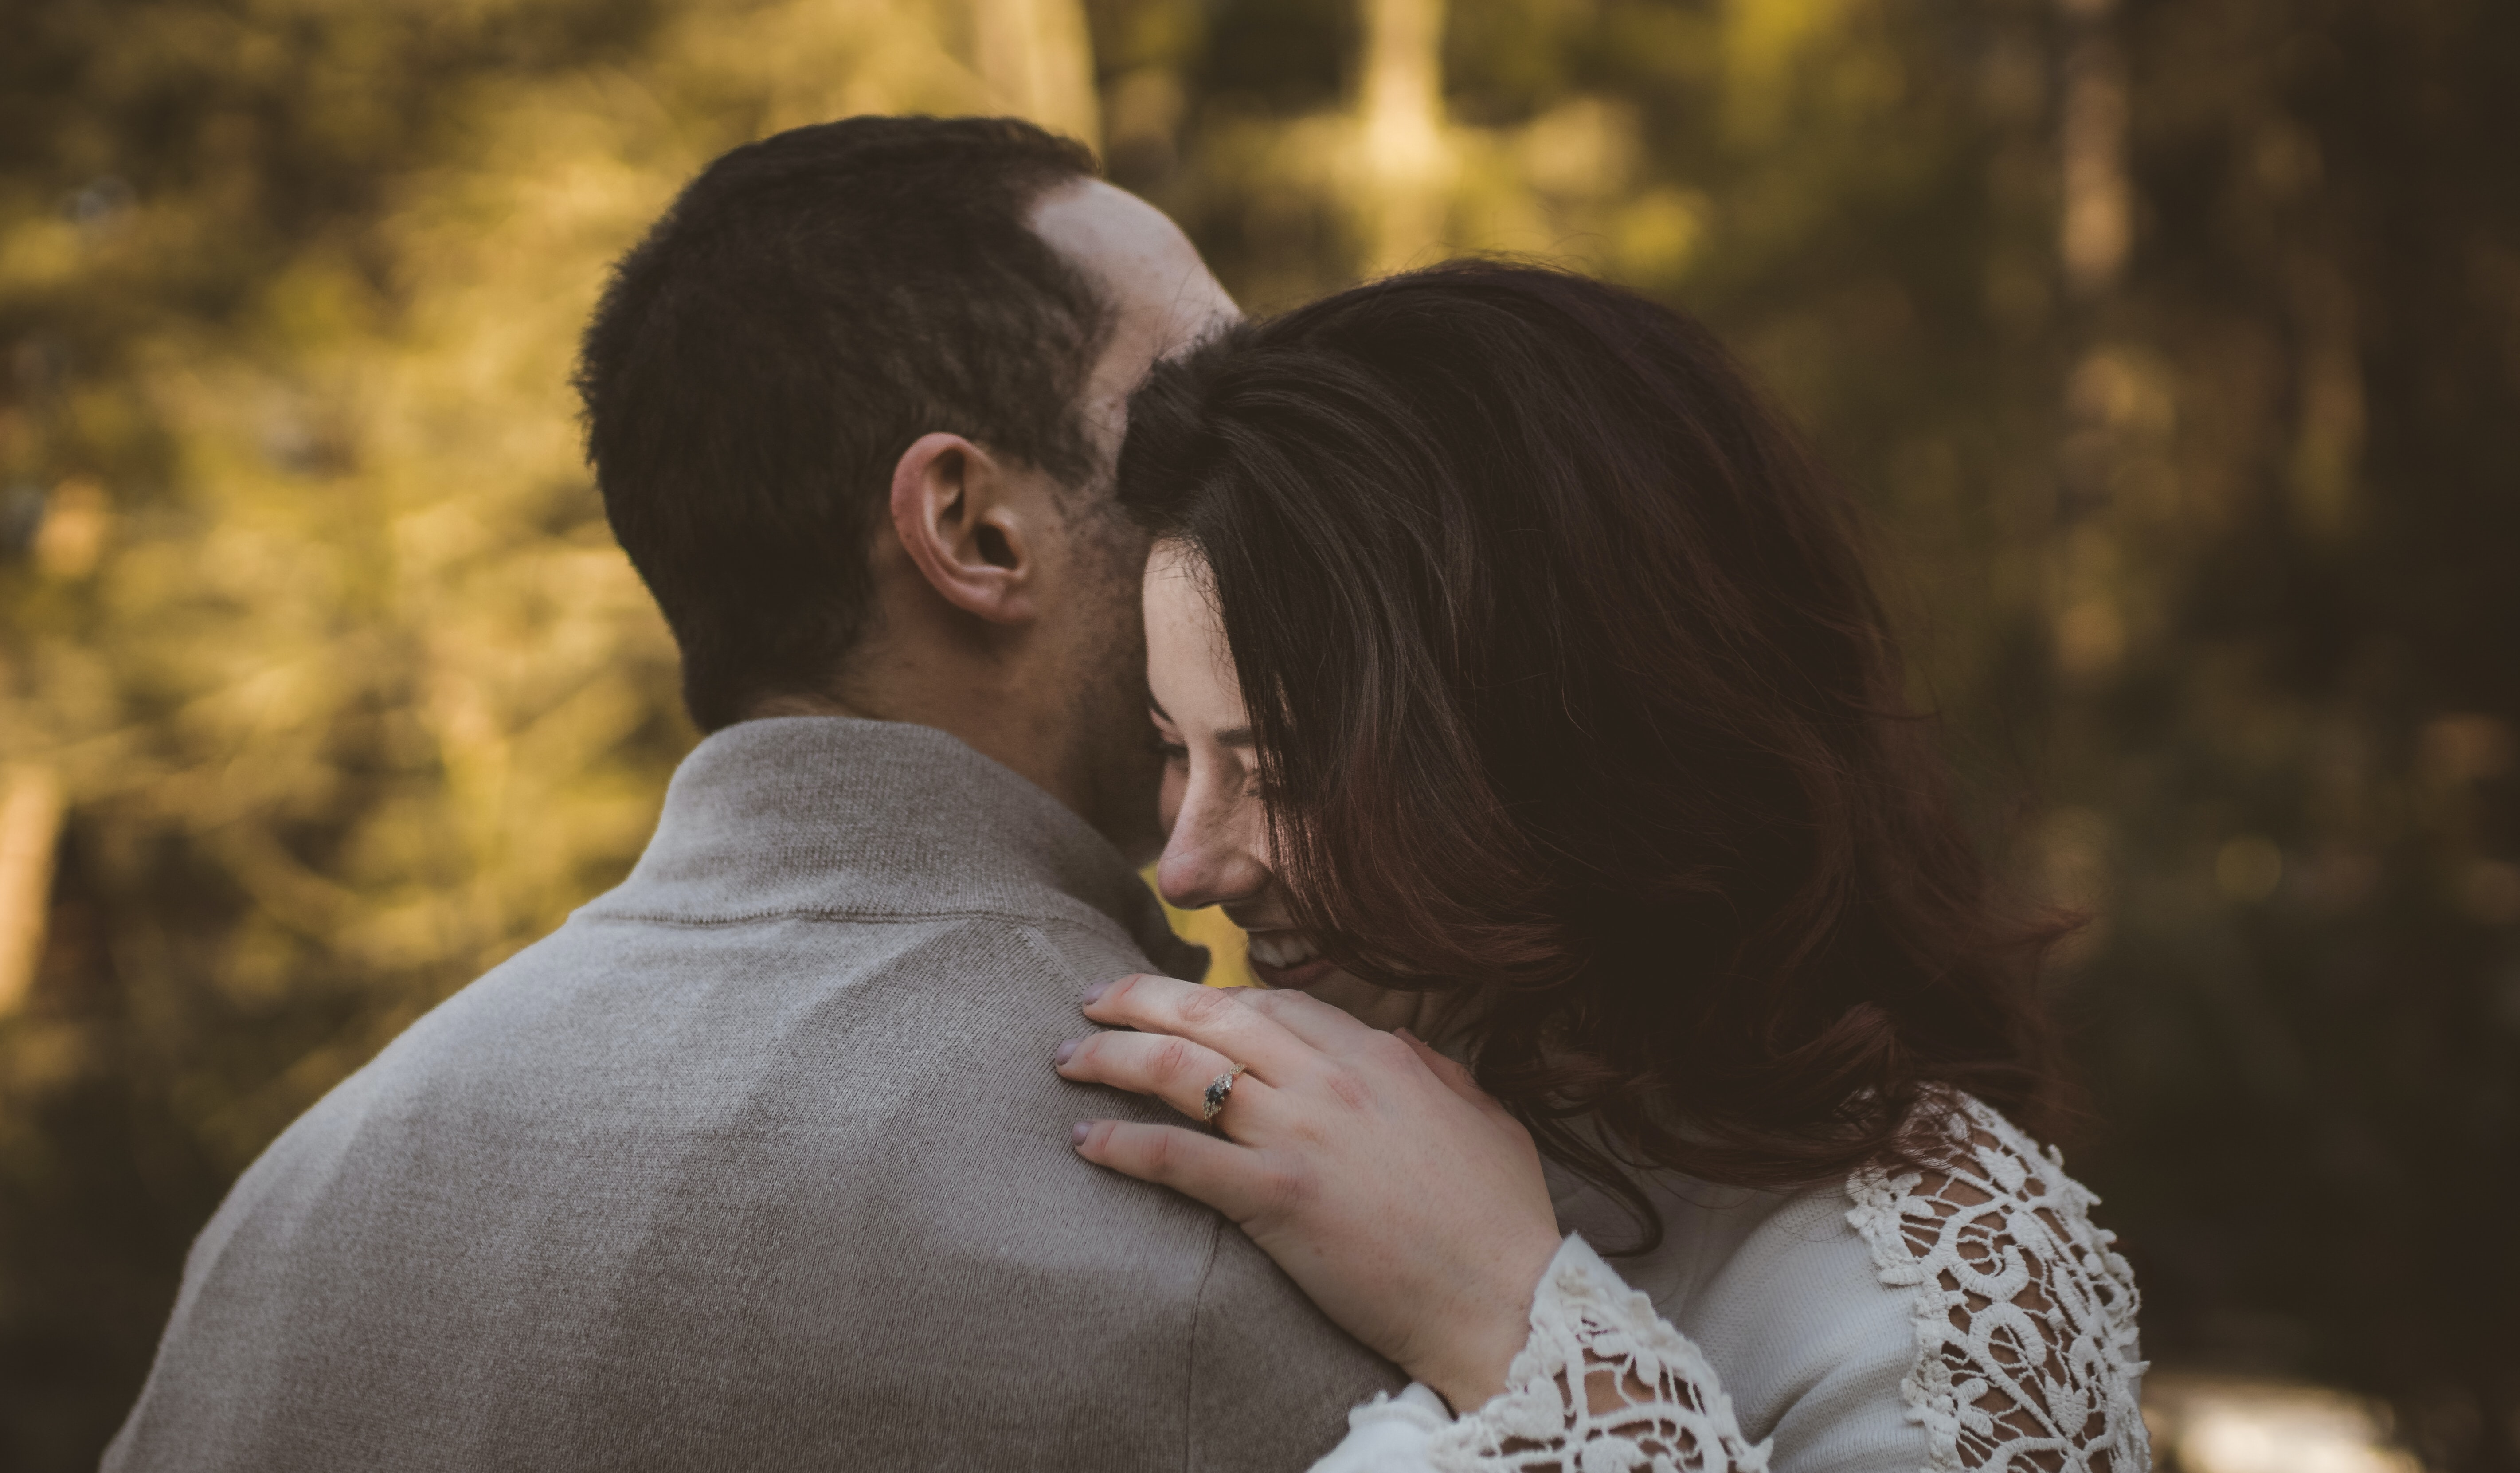 man and woman hugging each other during daytime